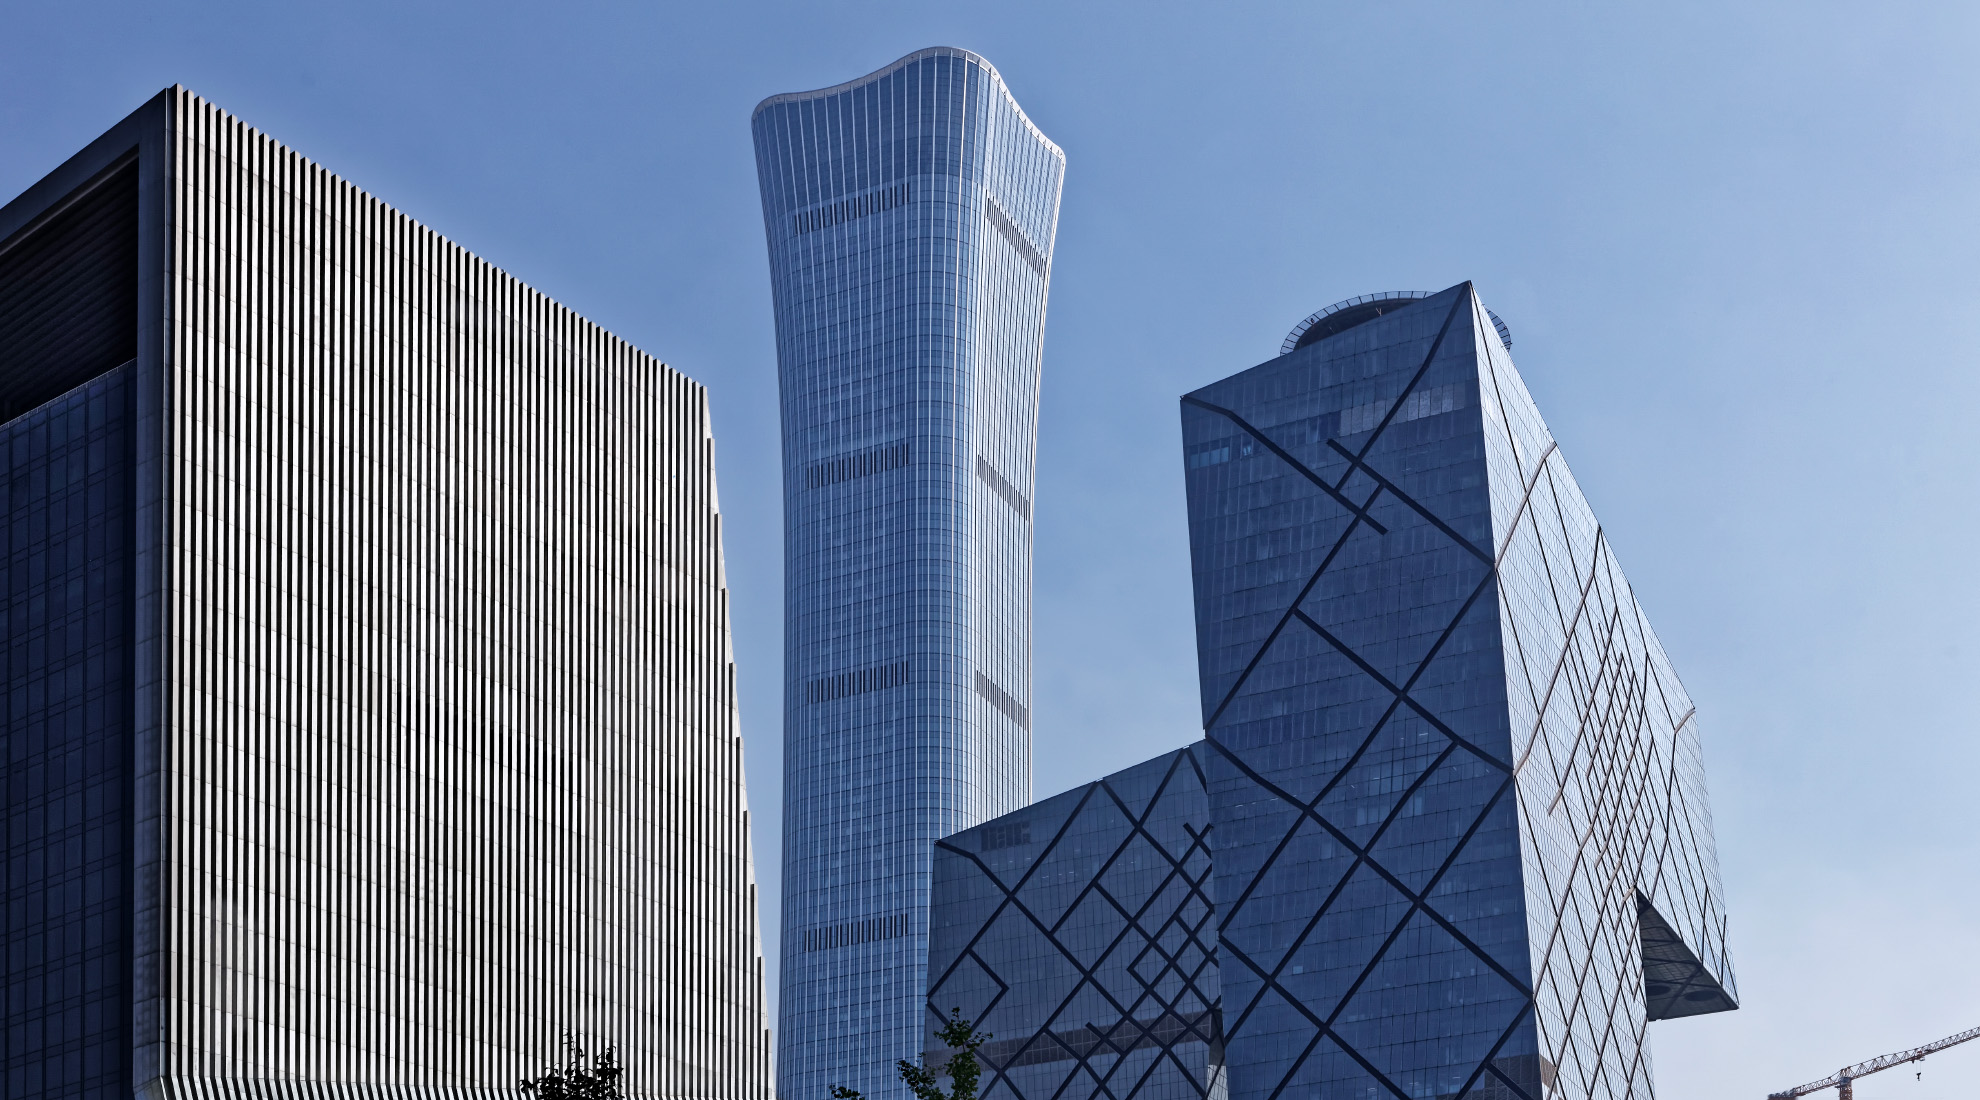 Paul Dingman is an architectural photographer based in China and working throughout Asia and the Middle East.